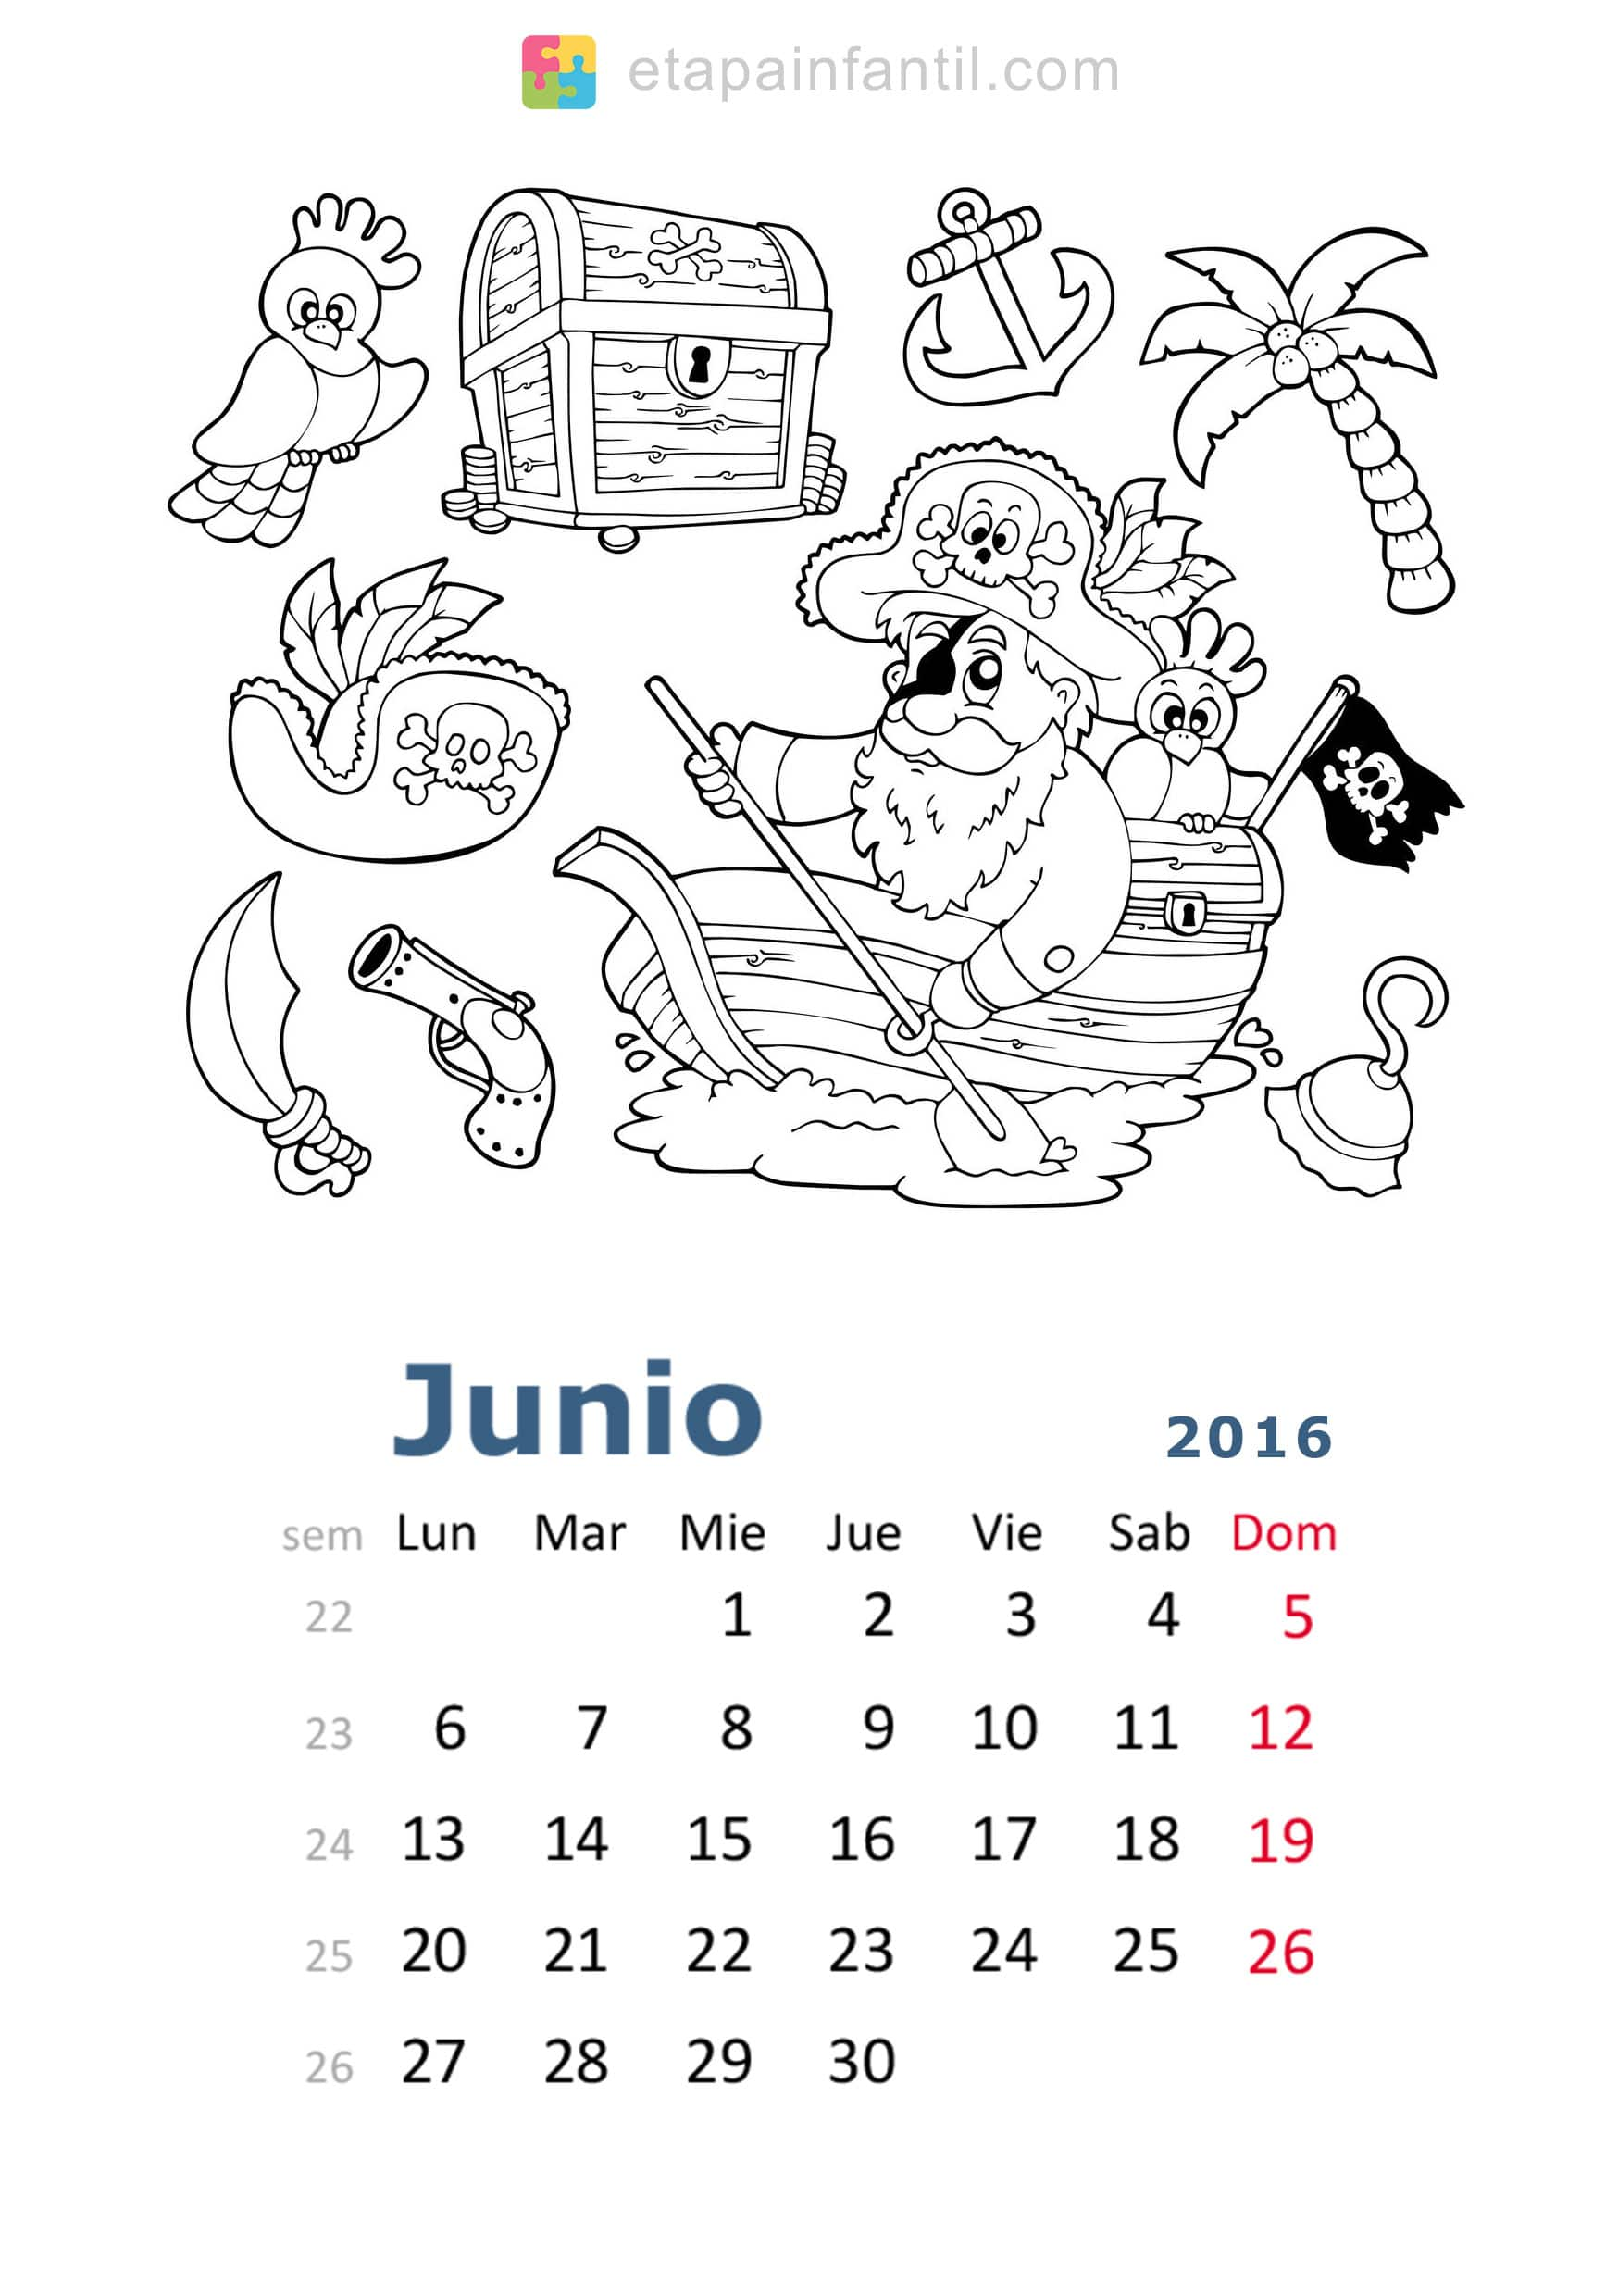 Calendario de 2016 para imprimir y colorear etapa infantil for Calendario junio 2016 para imprimir